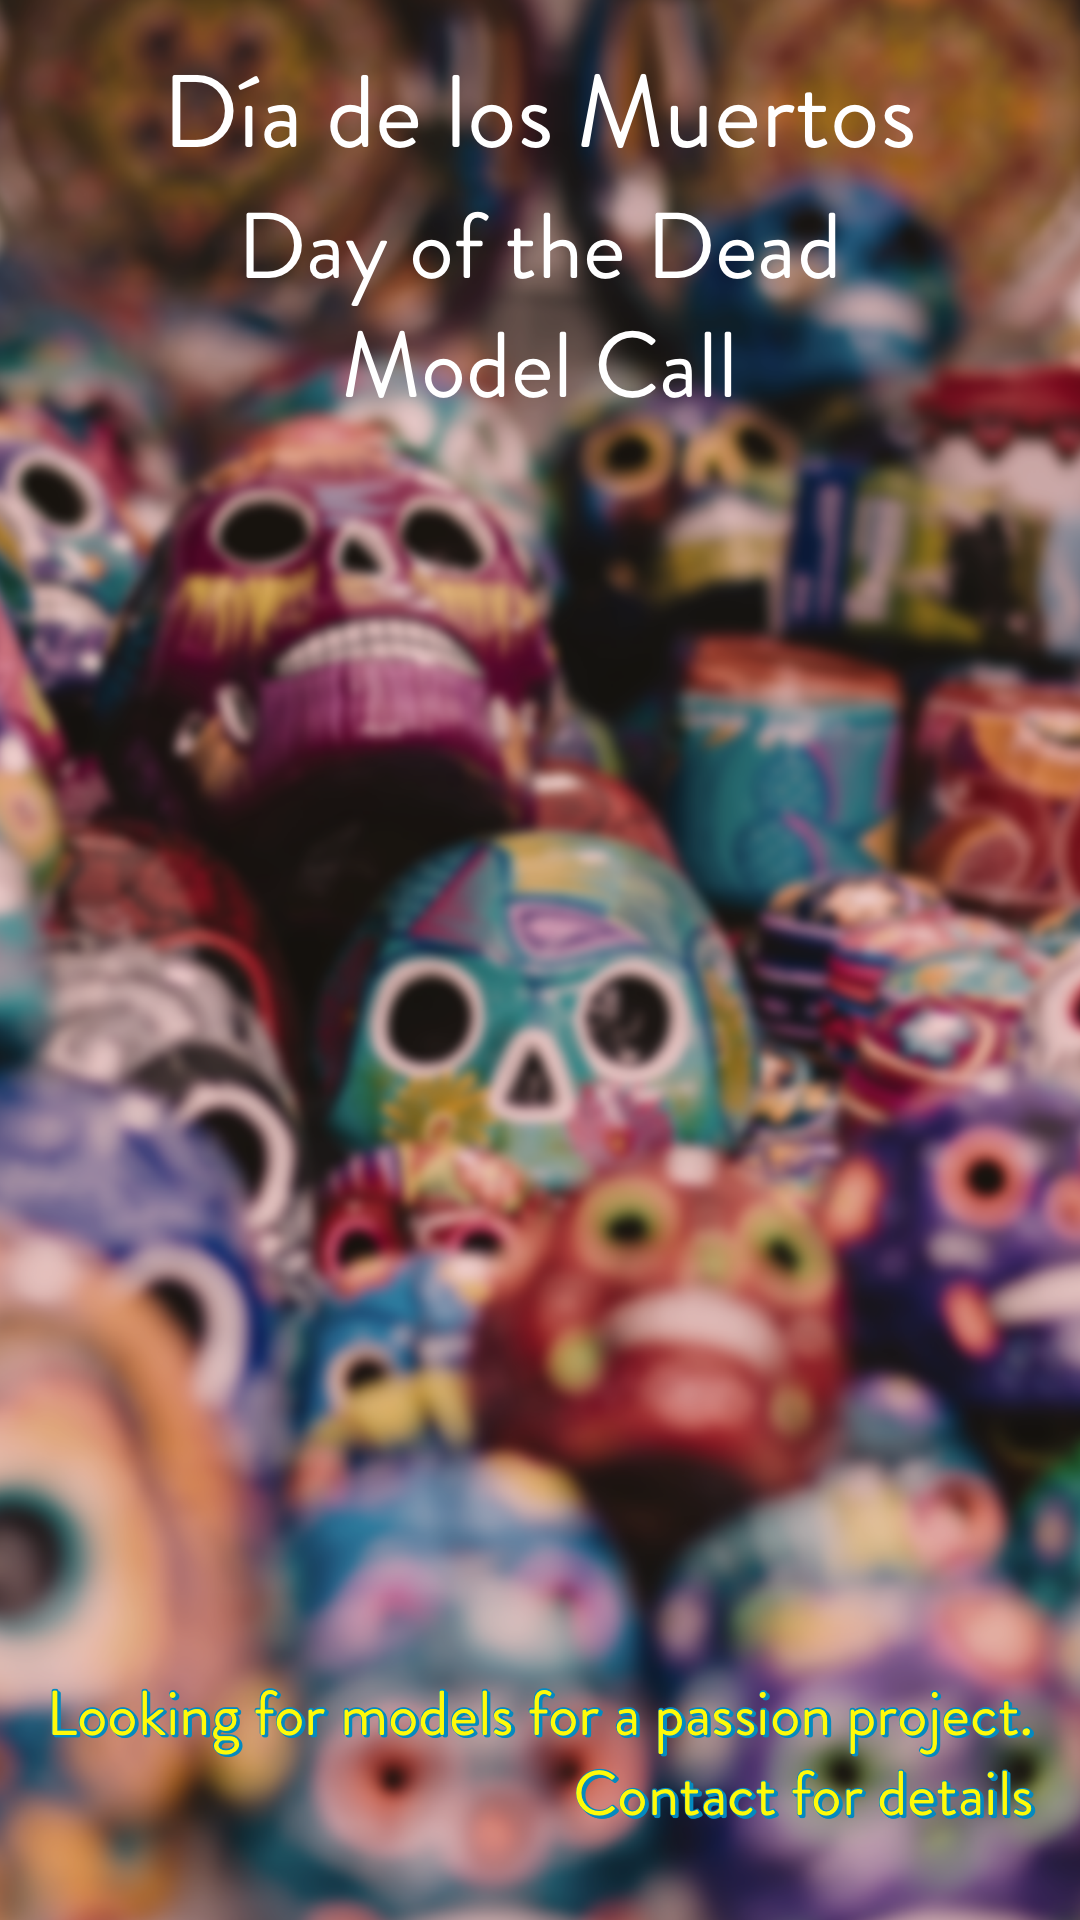 día de los muertos - We are looking for people to become Sugar Skulls. Projected shoot date will be Sept. 28th & 29th. Deadline to apply is Sept. 8th @ midnight.